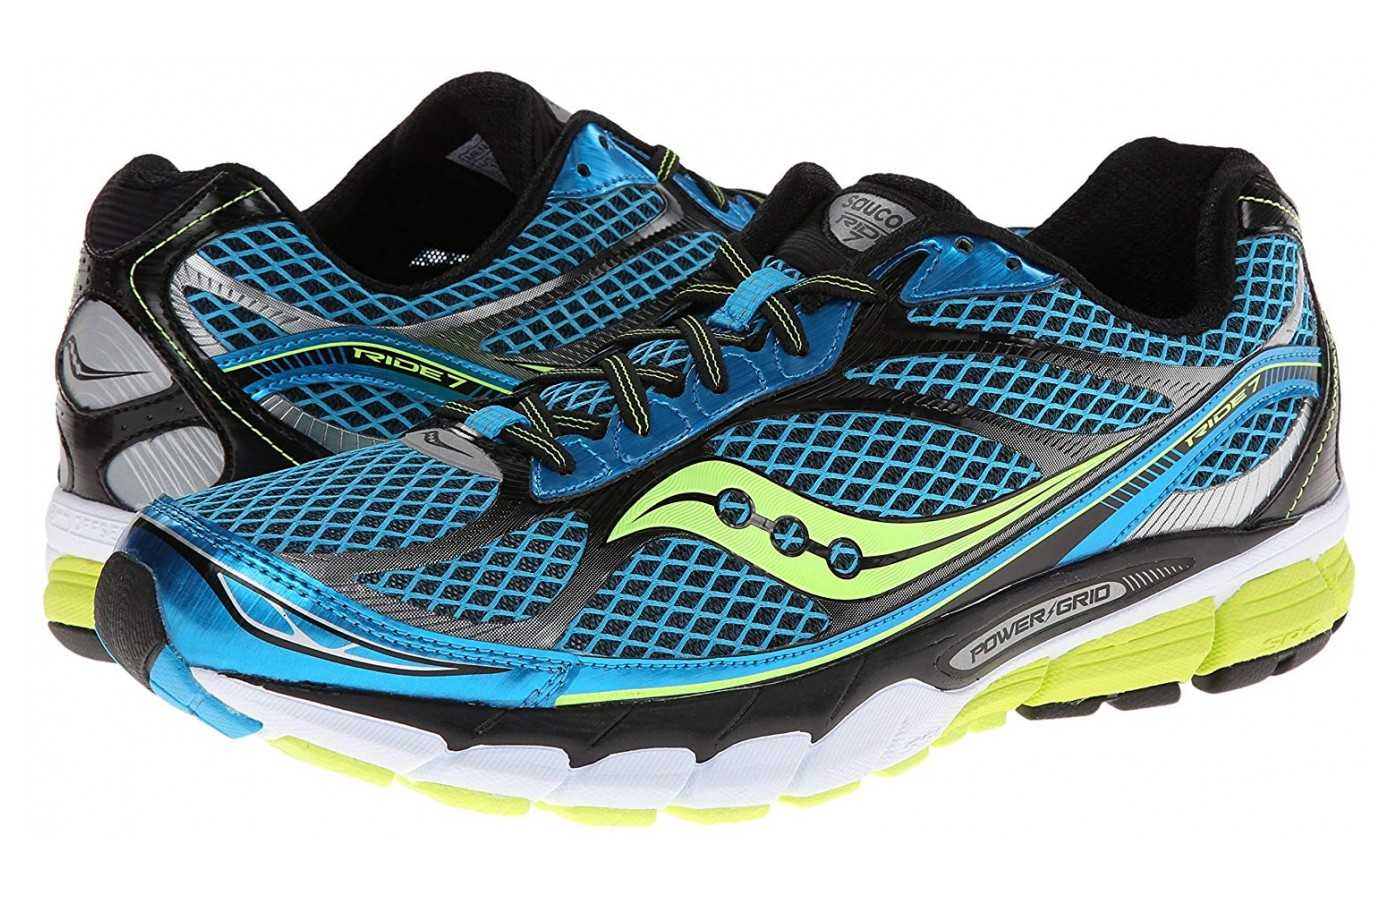 The Saucony Ride 7 is a fantastic running shoe option for heel strikers.